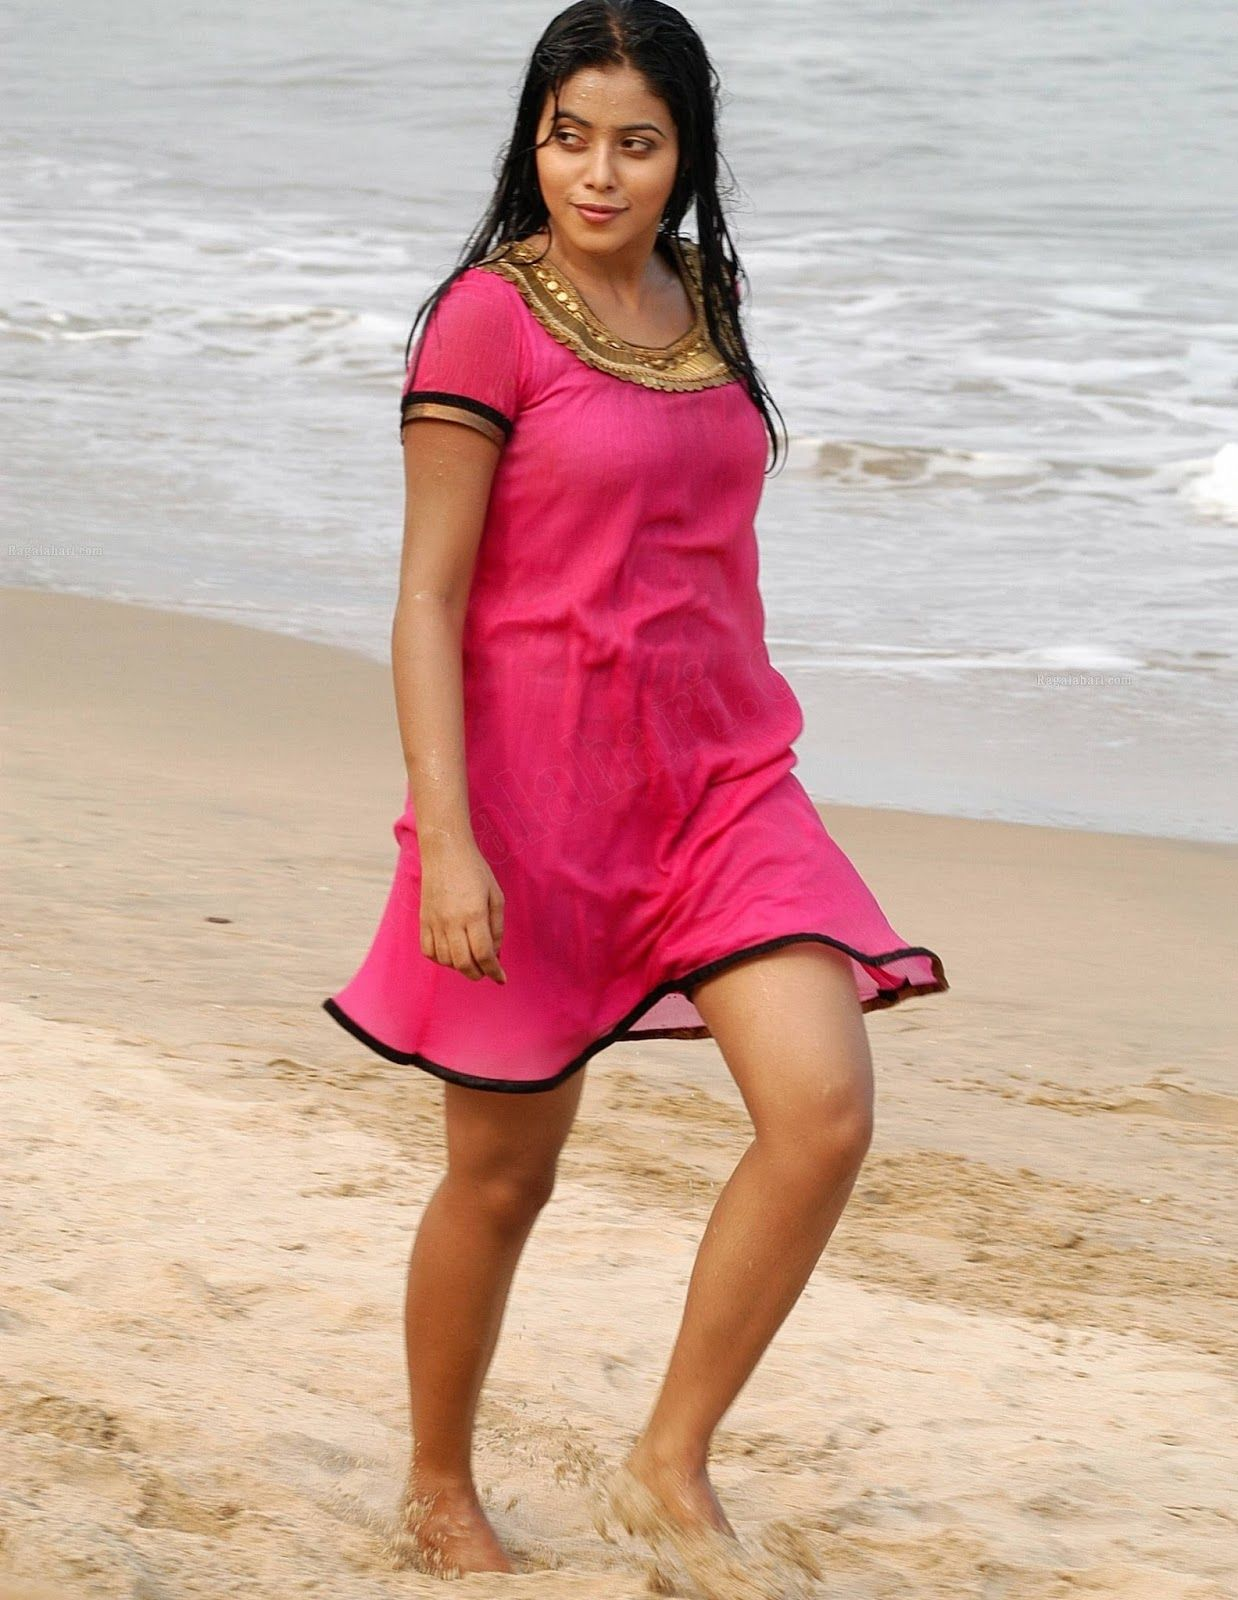 Indian Red Porn Good indian actress latest photos movie news and all about movie | nice